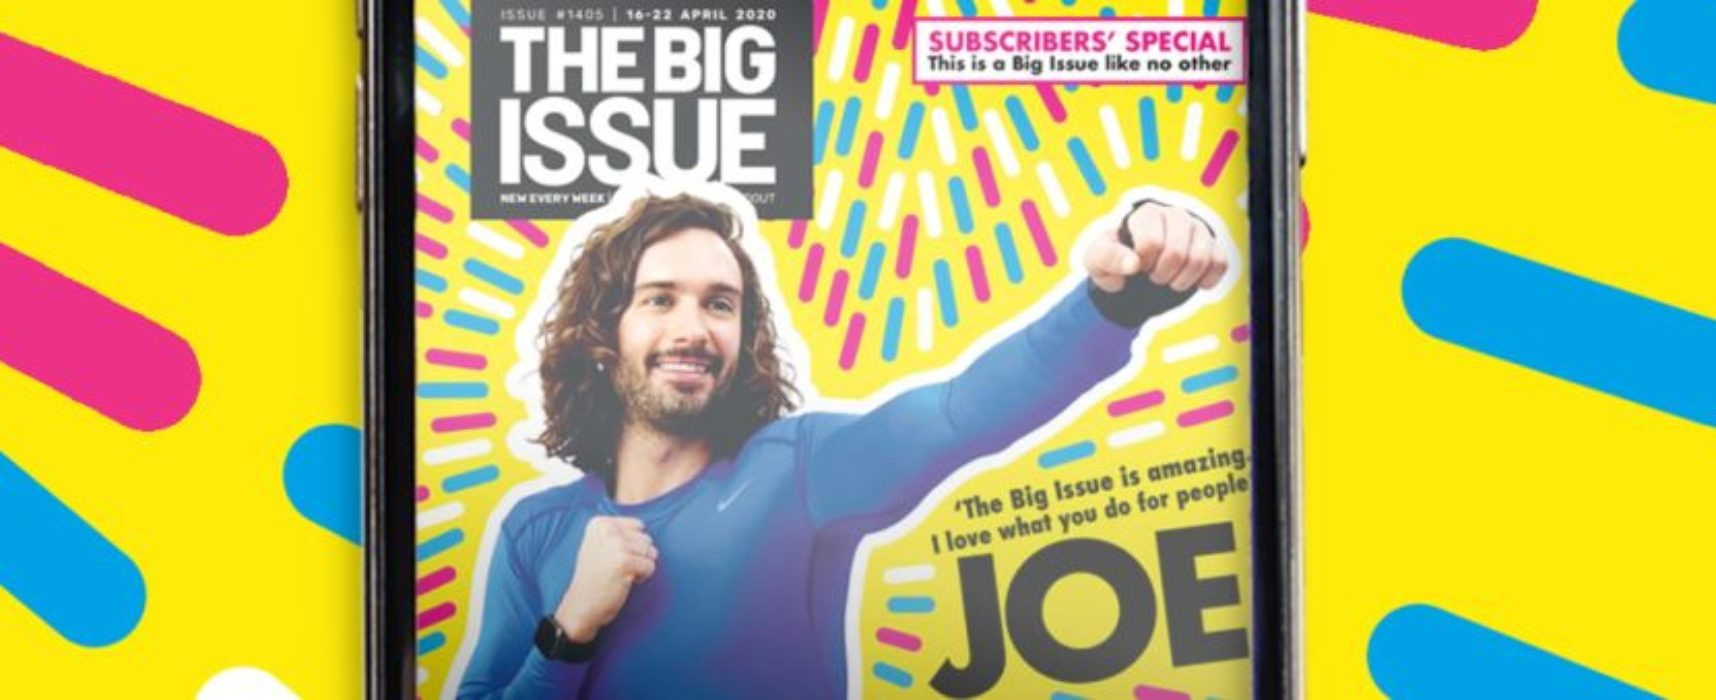 Joe Wicks helps to launch The Big Issue's new app